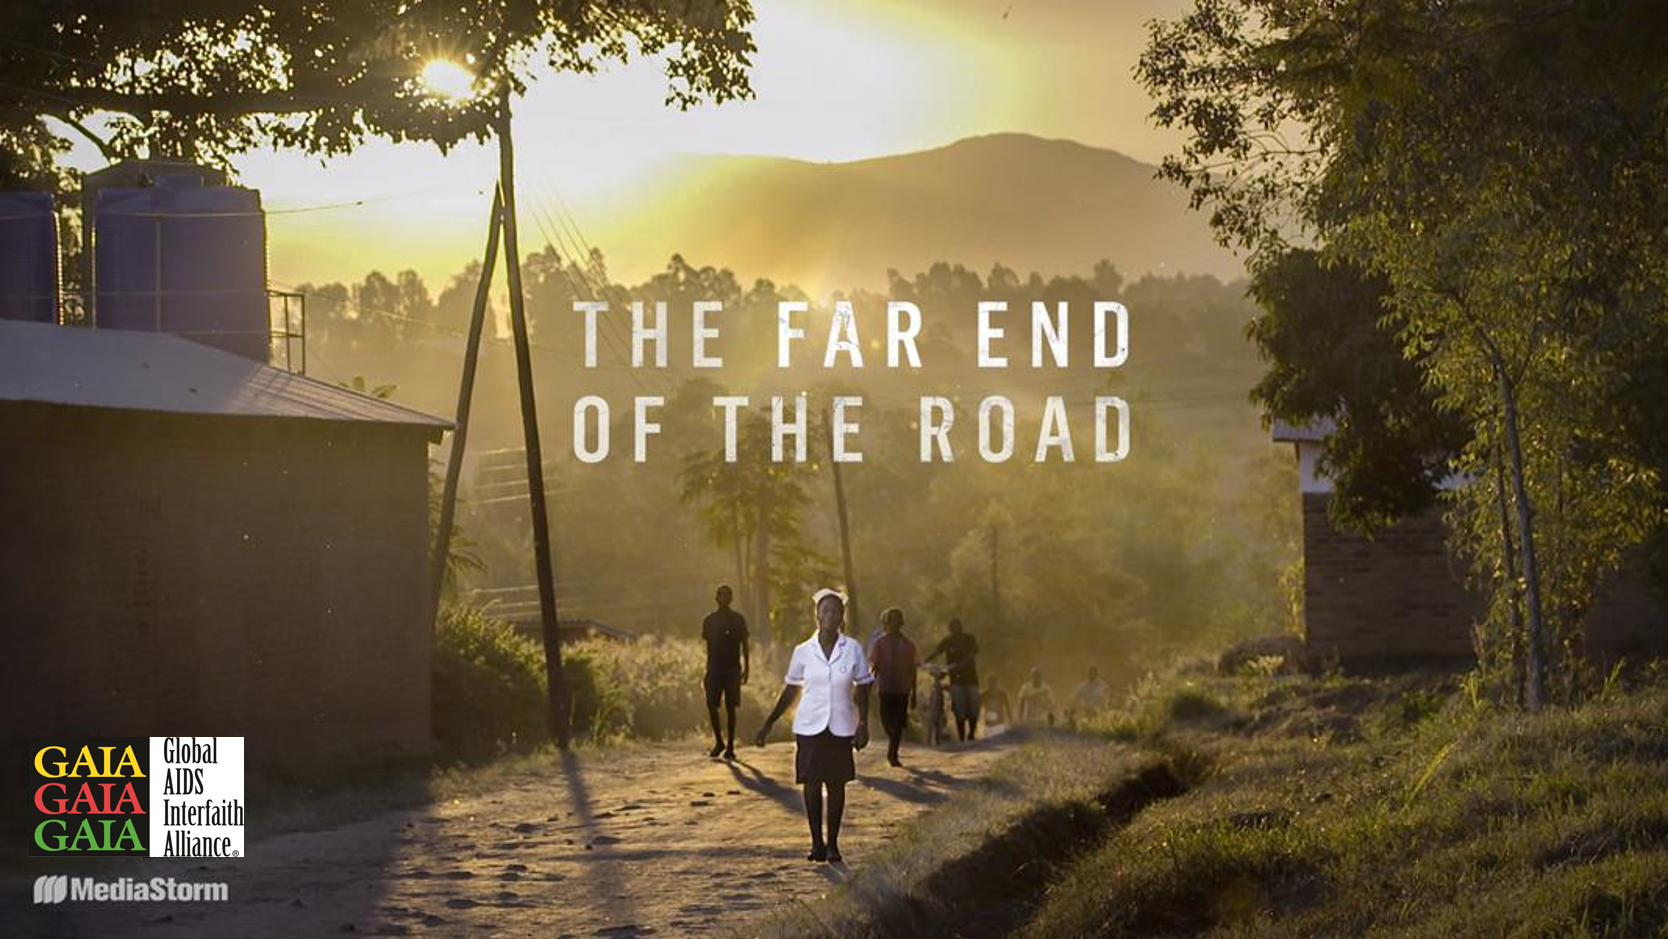 GAIA The Far End of the Road: access to healthcare and medical treatment in rural Malawi